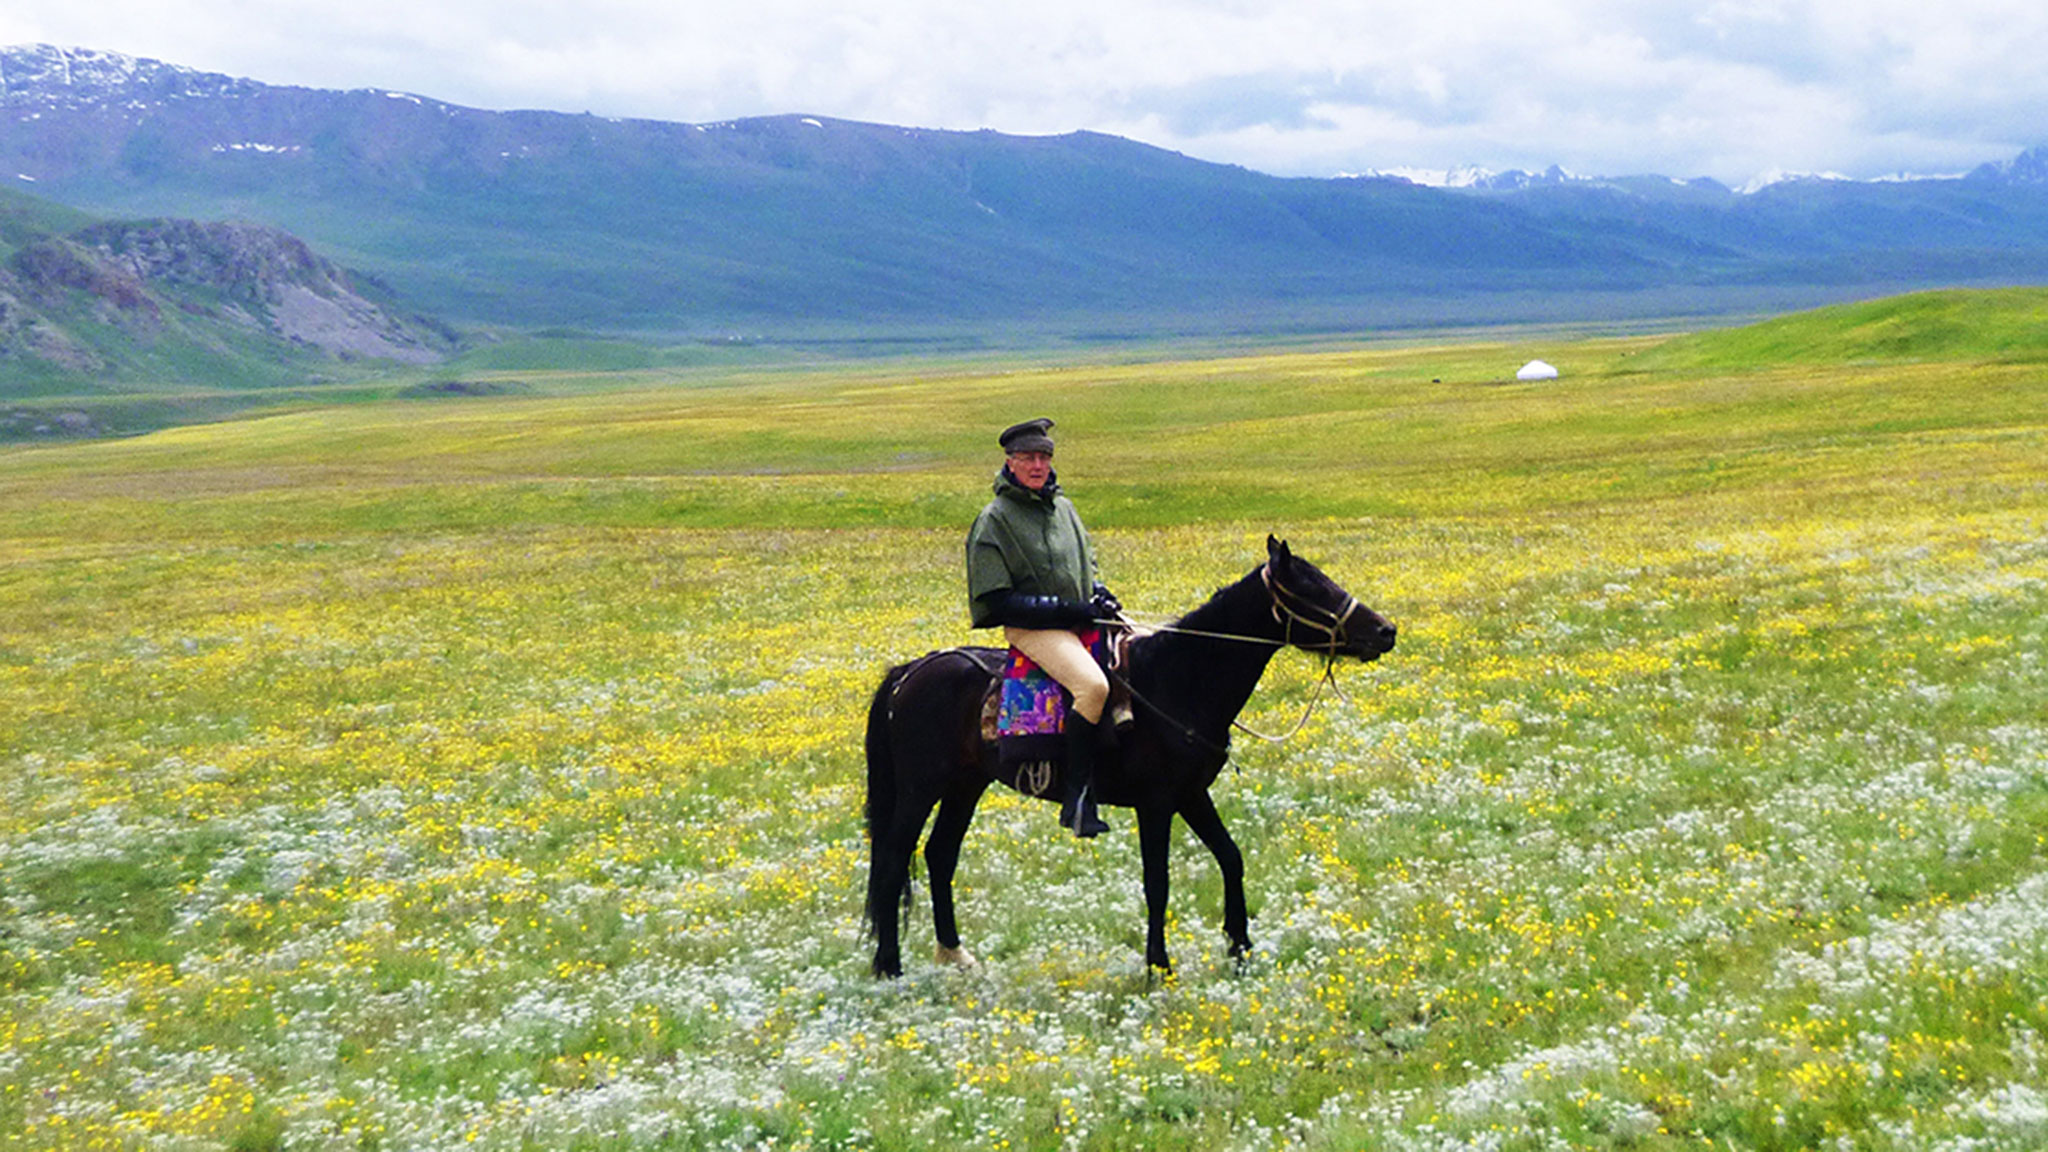 Hunt For Wild Flowers In The Mountains And Meadows Of Kyrgyzstan